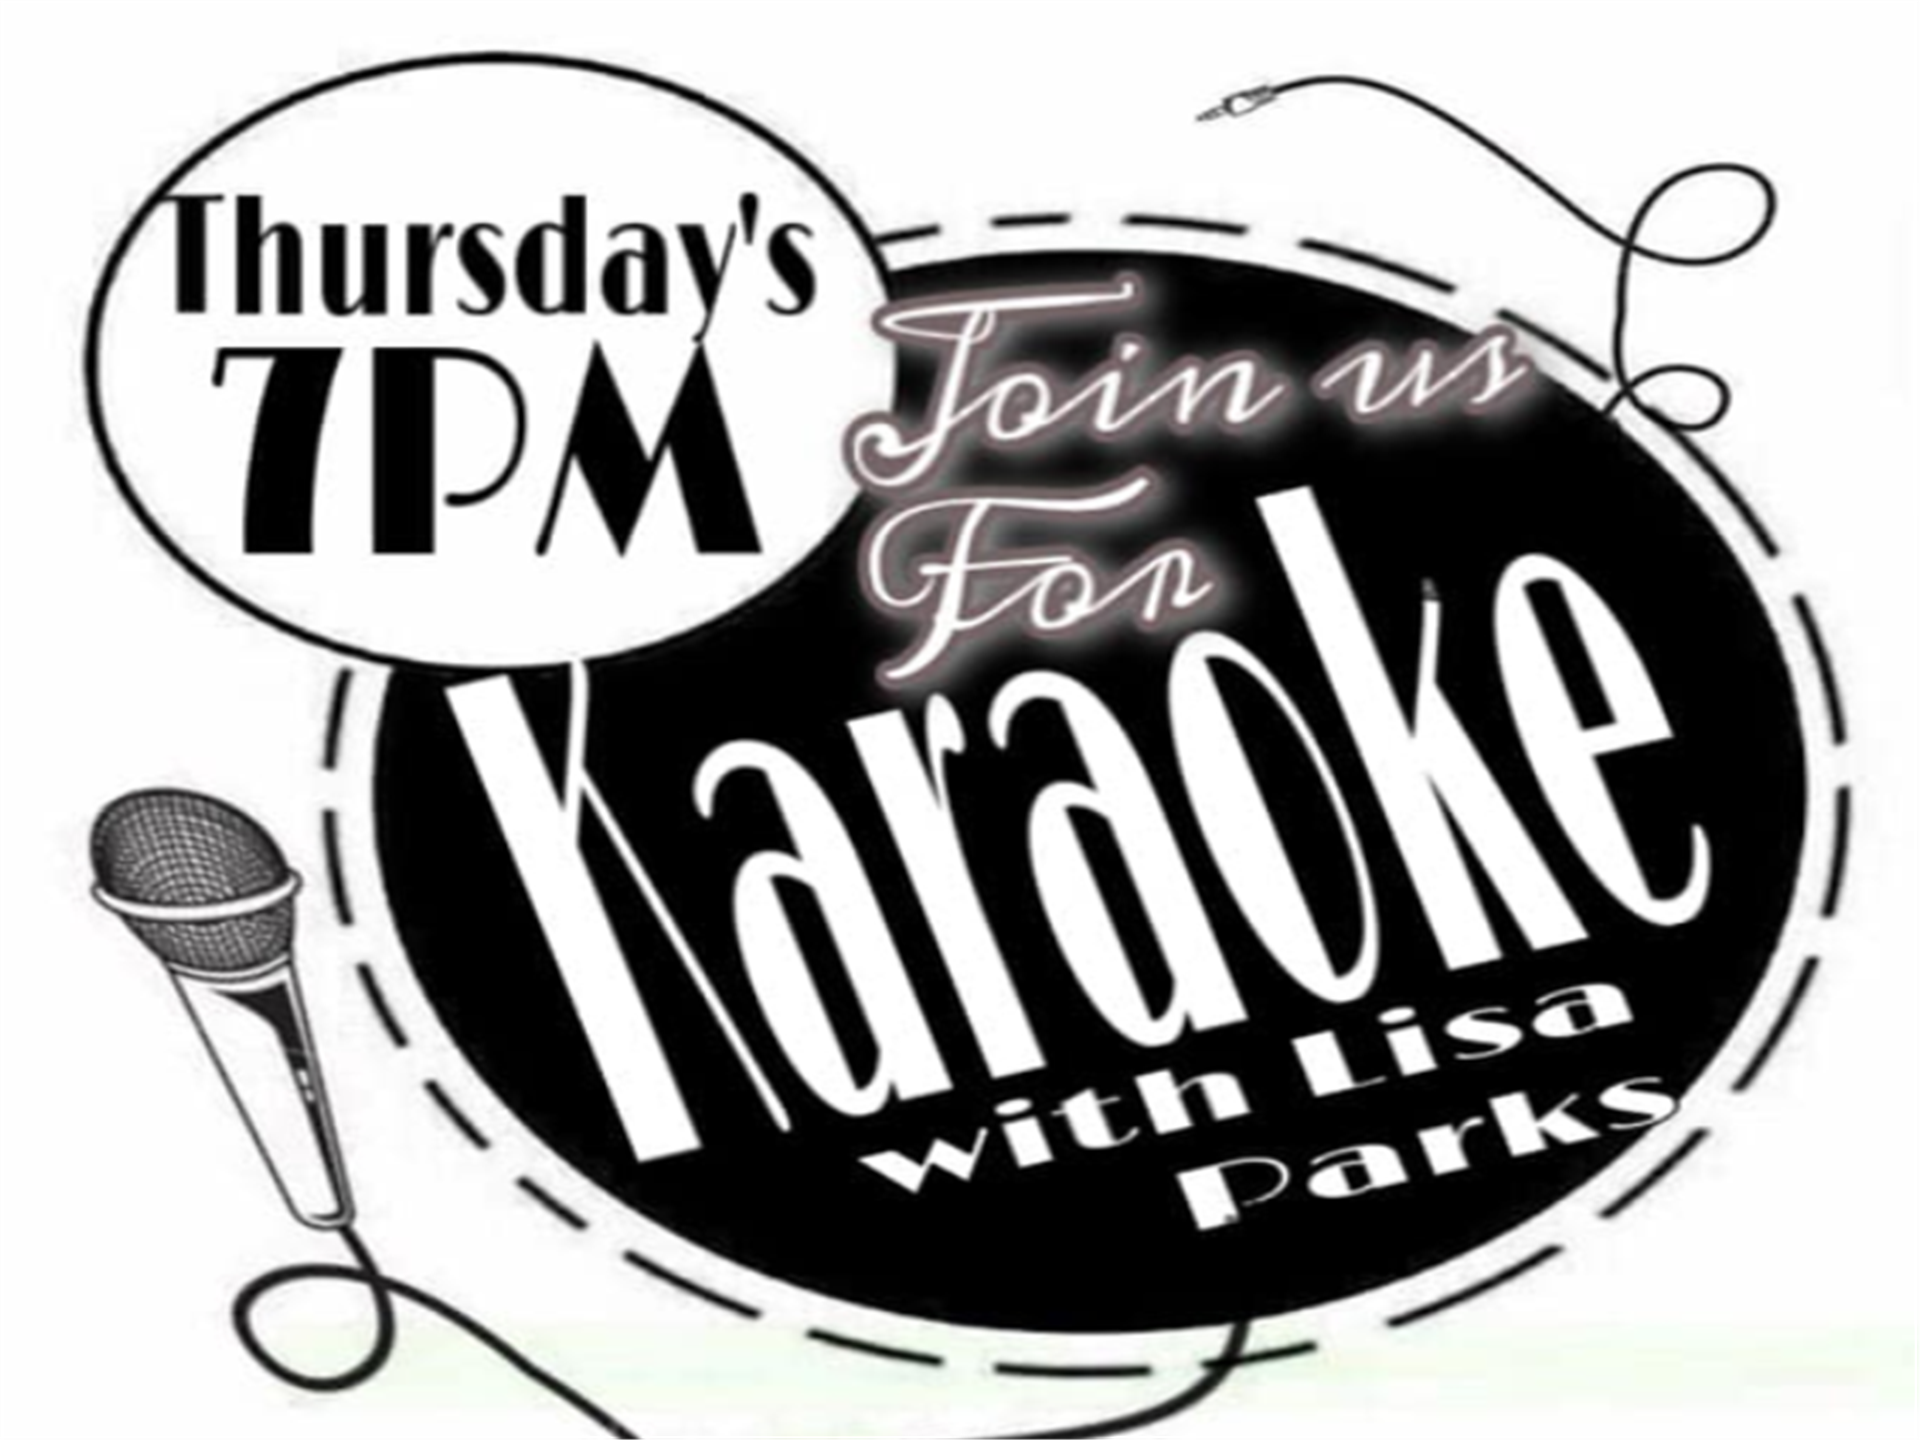 thursdays at 7pm join us for karaoke with lisa parks